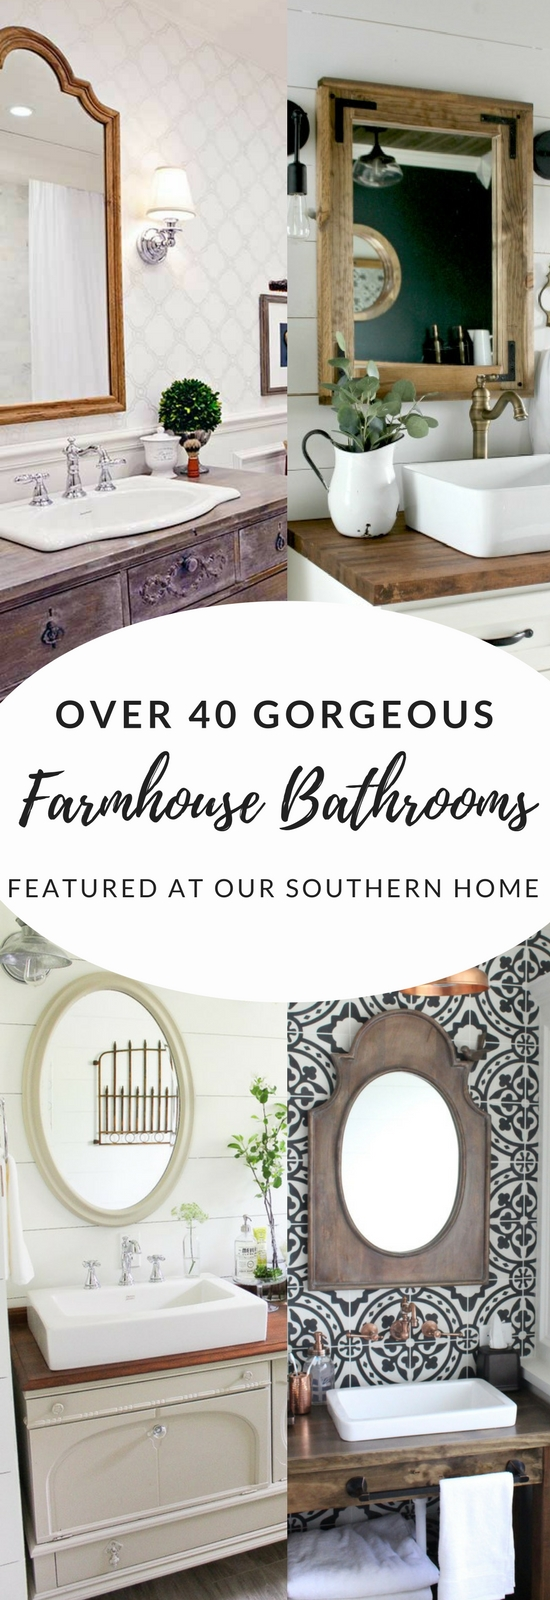 Over 40 gorgeous farmhouse bathroom ideas from the simple makeover to full remodel. There is a little something for every budget. #farmhousebathroom #bathroommakeover #bathroomideas